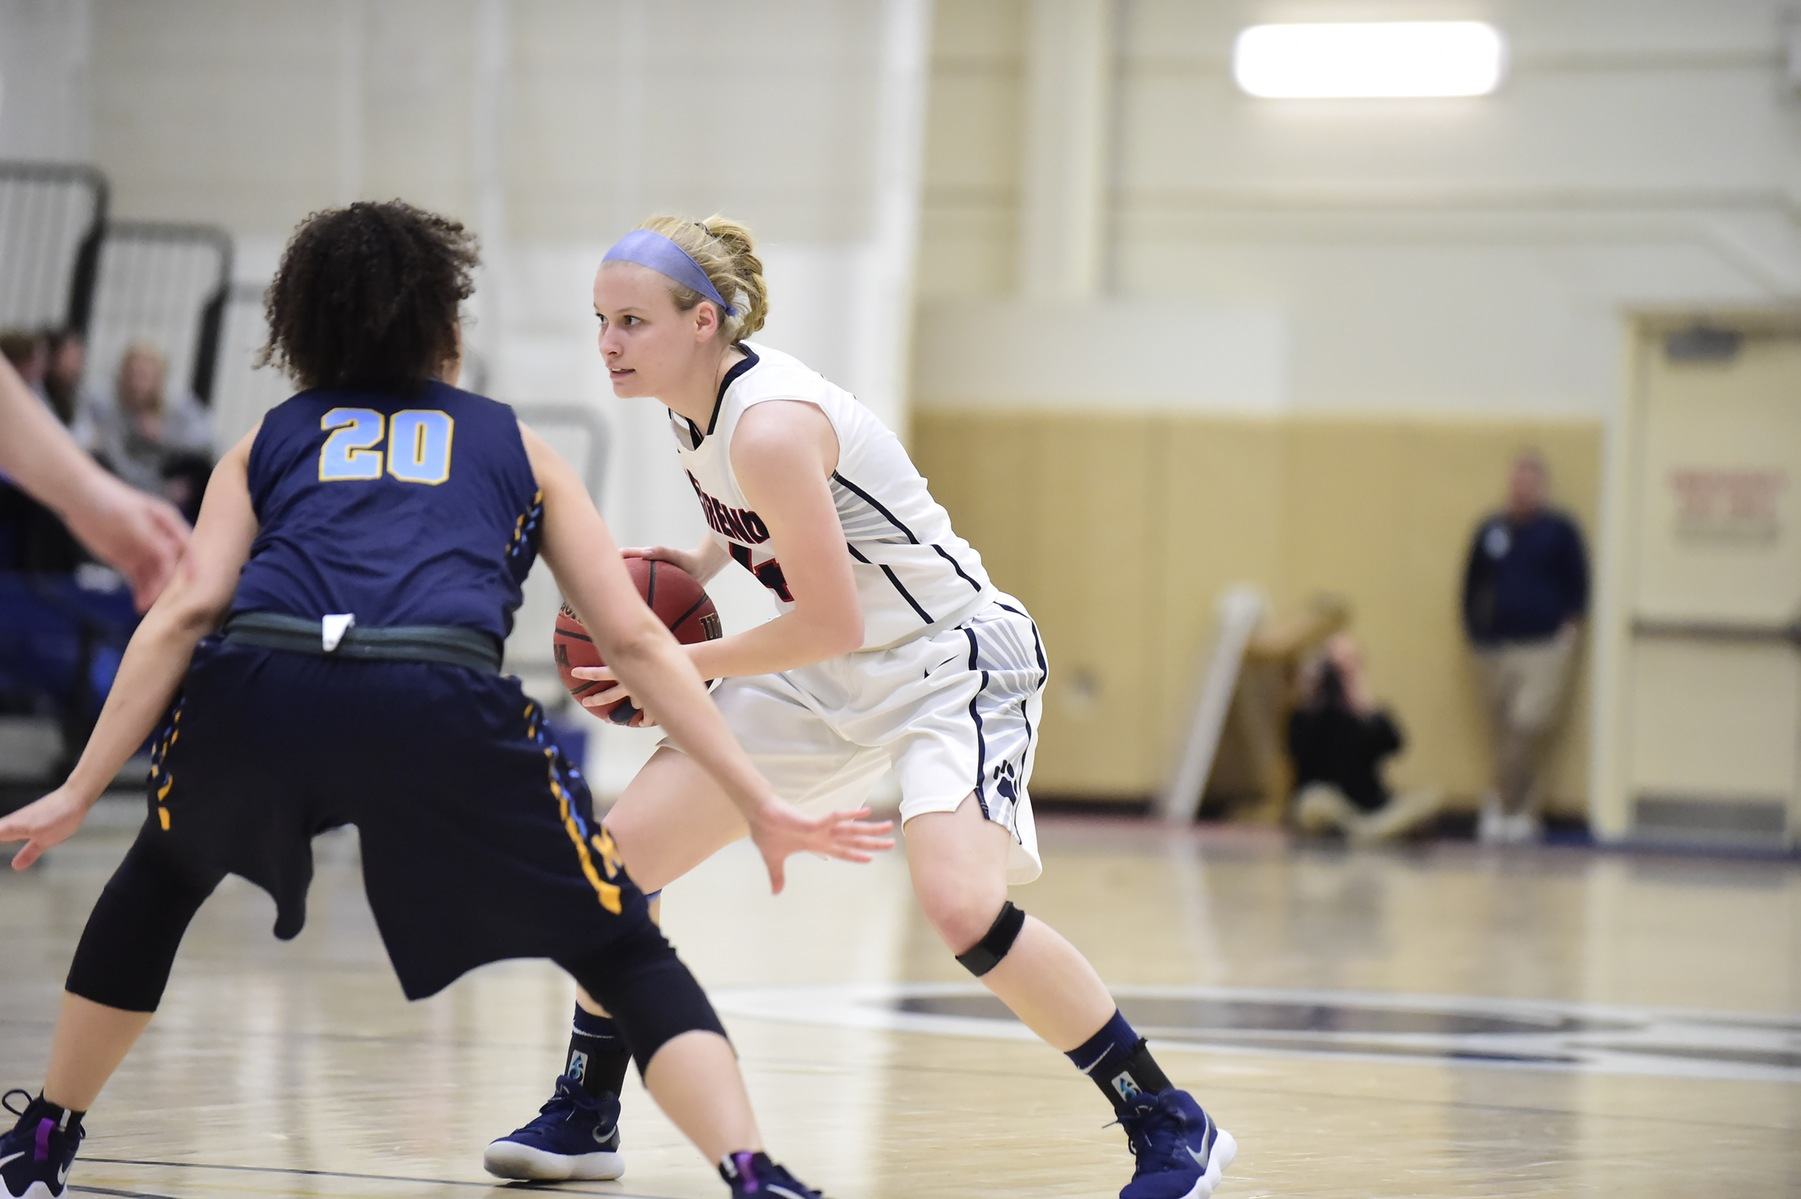 Women's Hoops Continues Hot Streak; Lions Down Altoona